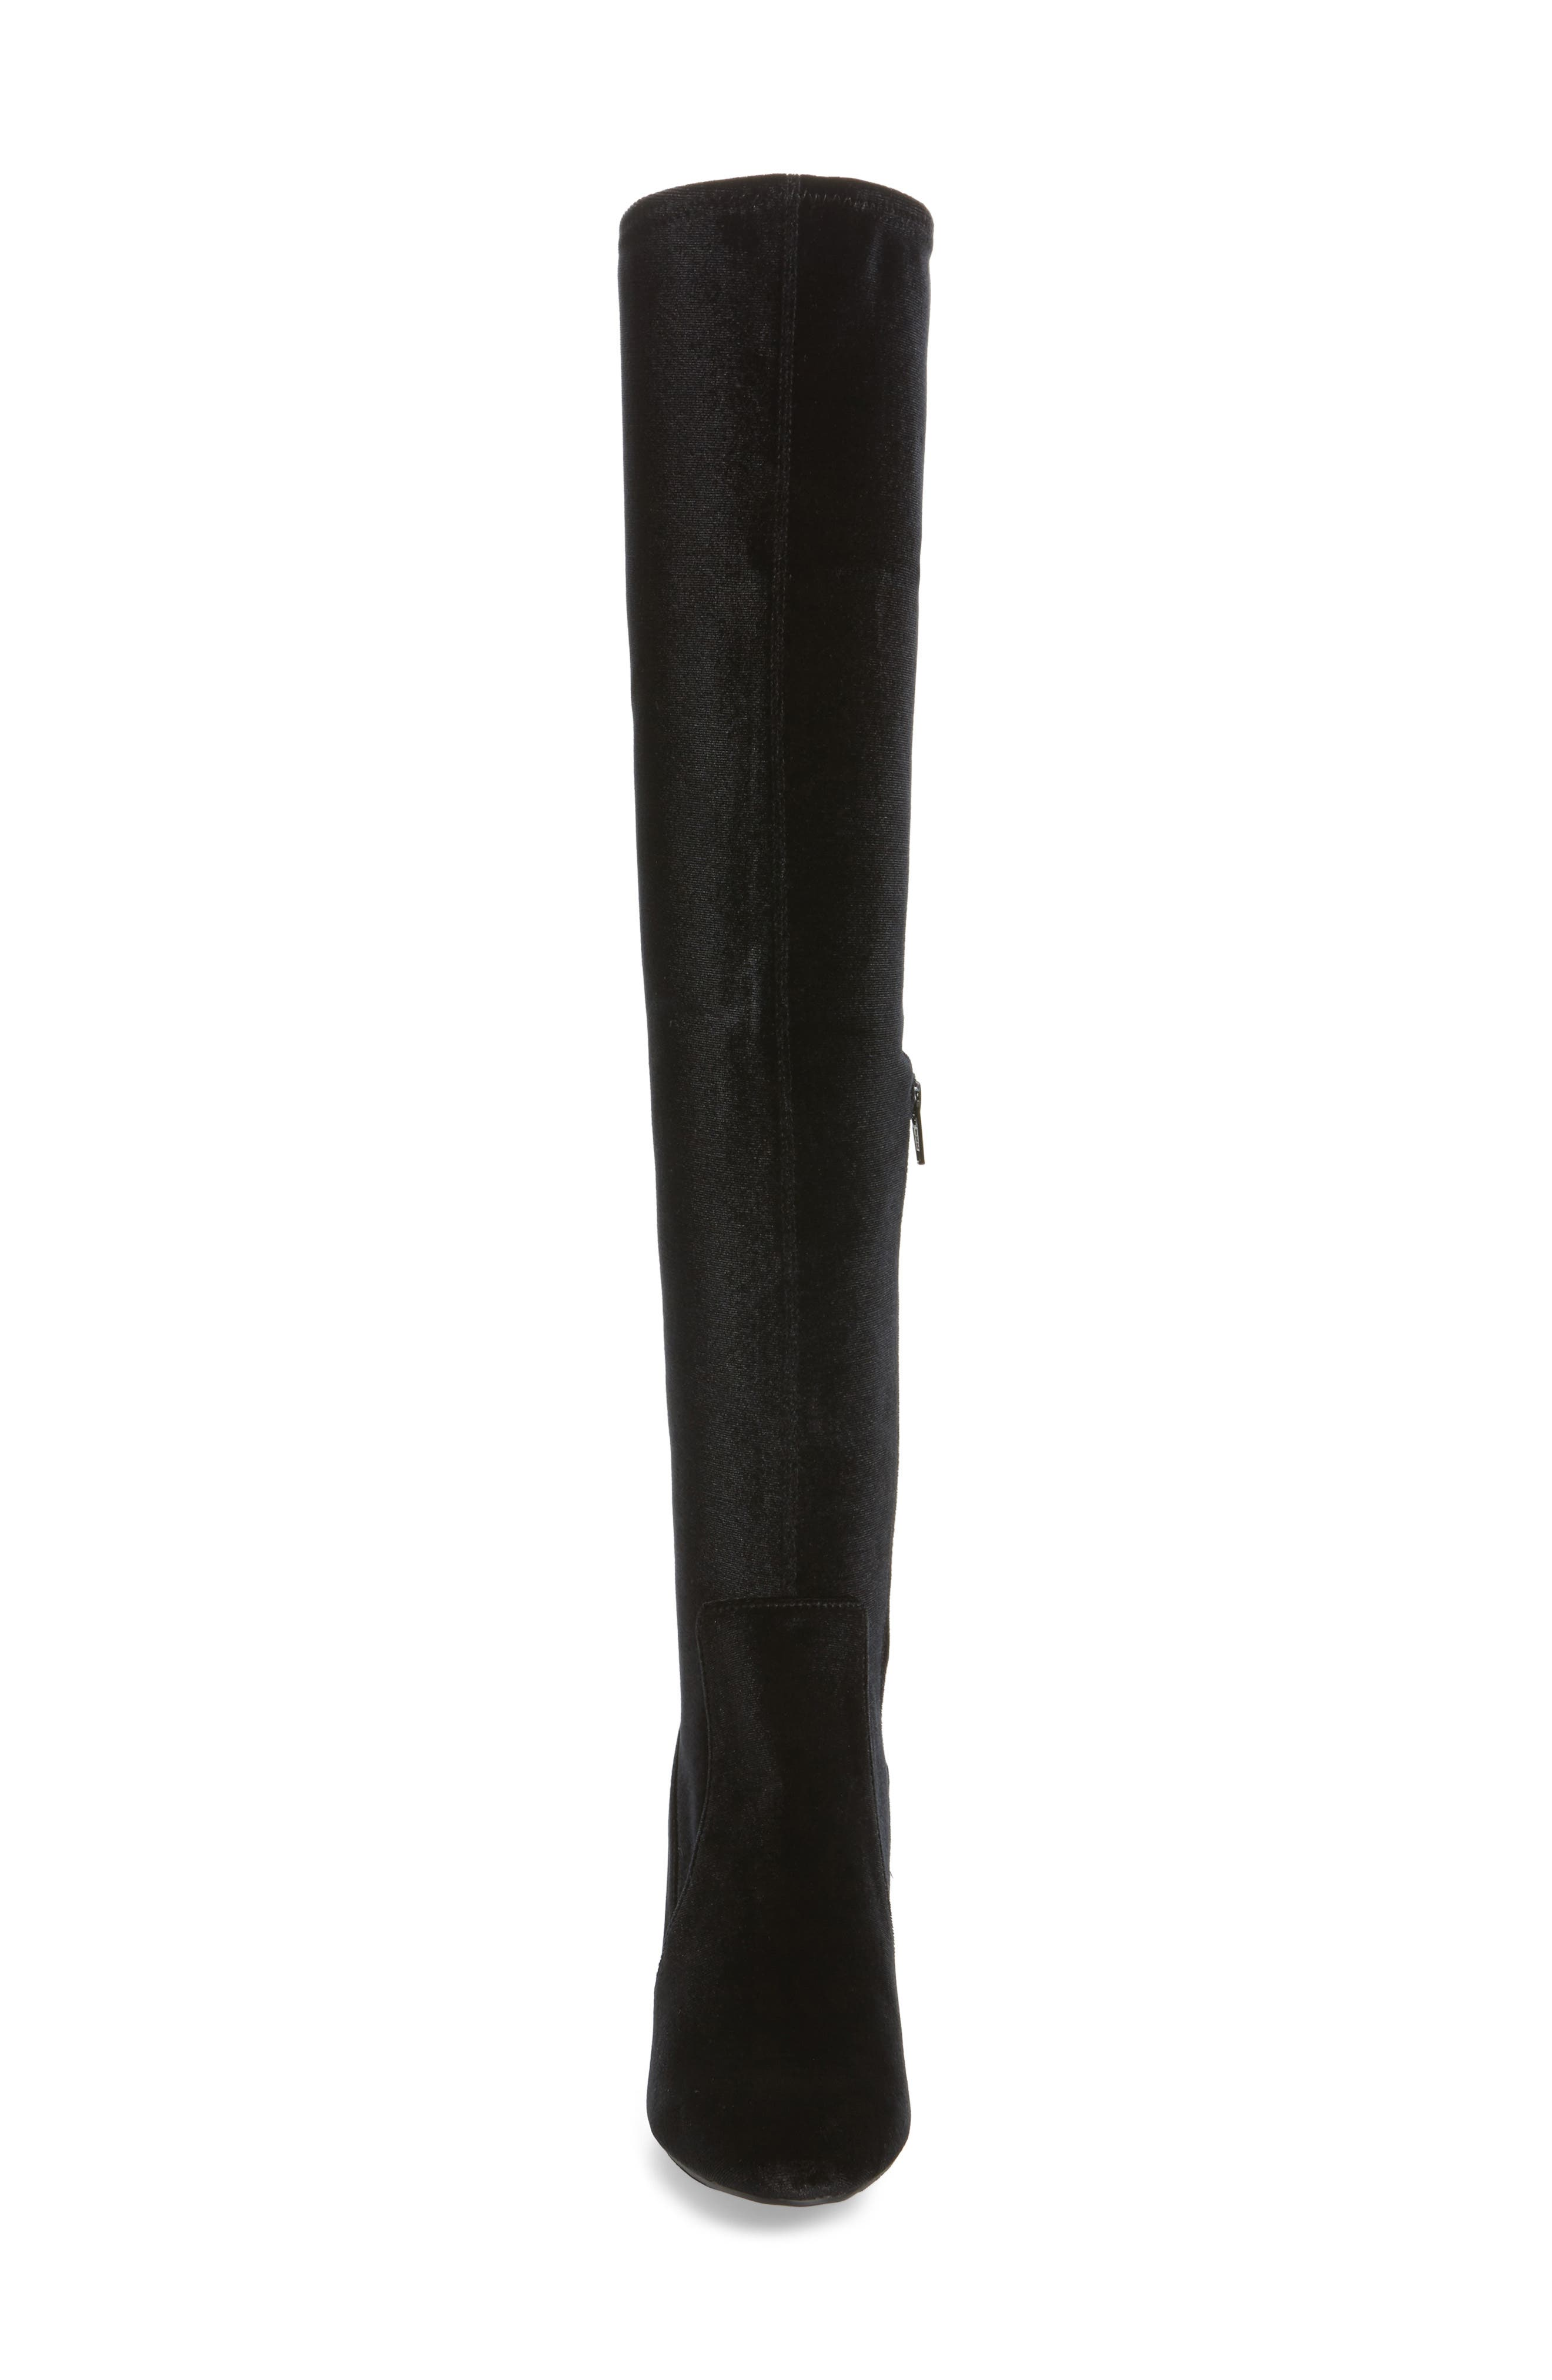 Itzela Over the Knee Boot,                             Alternate thumbnail 4, color,                             003